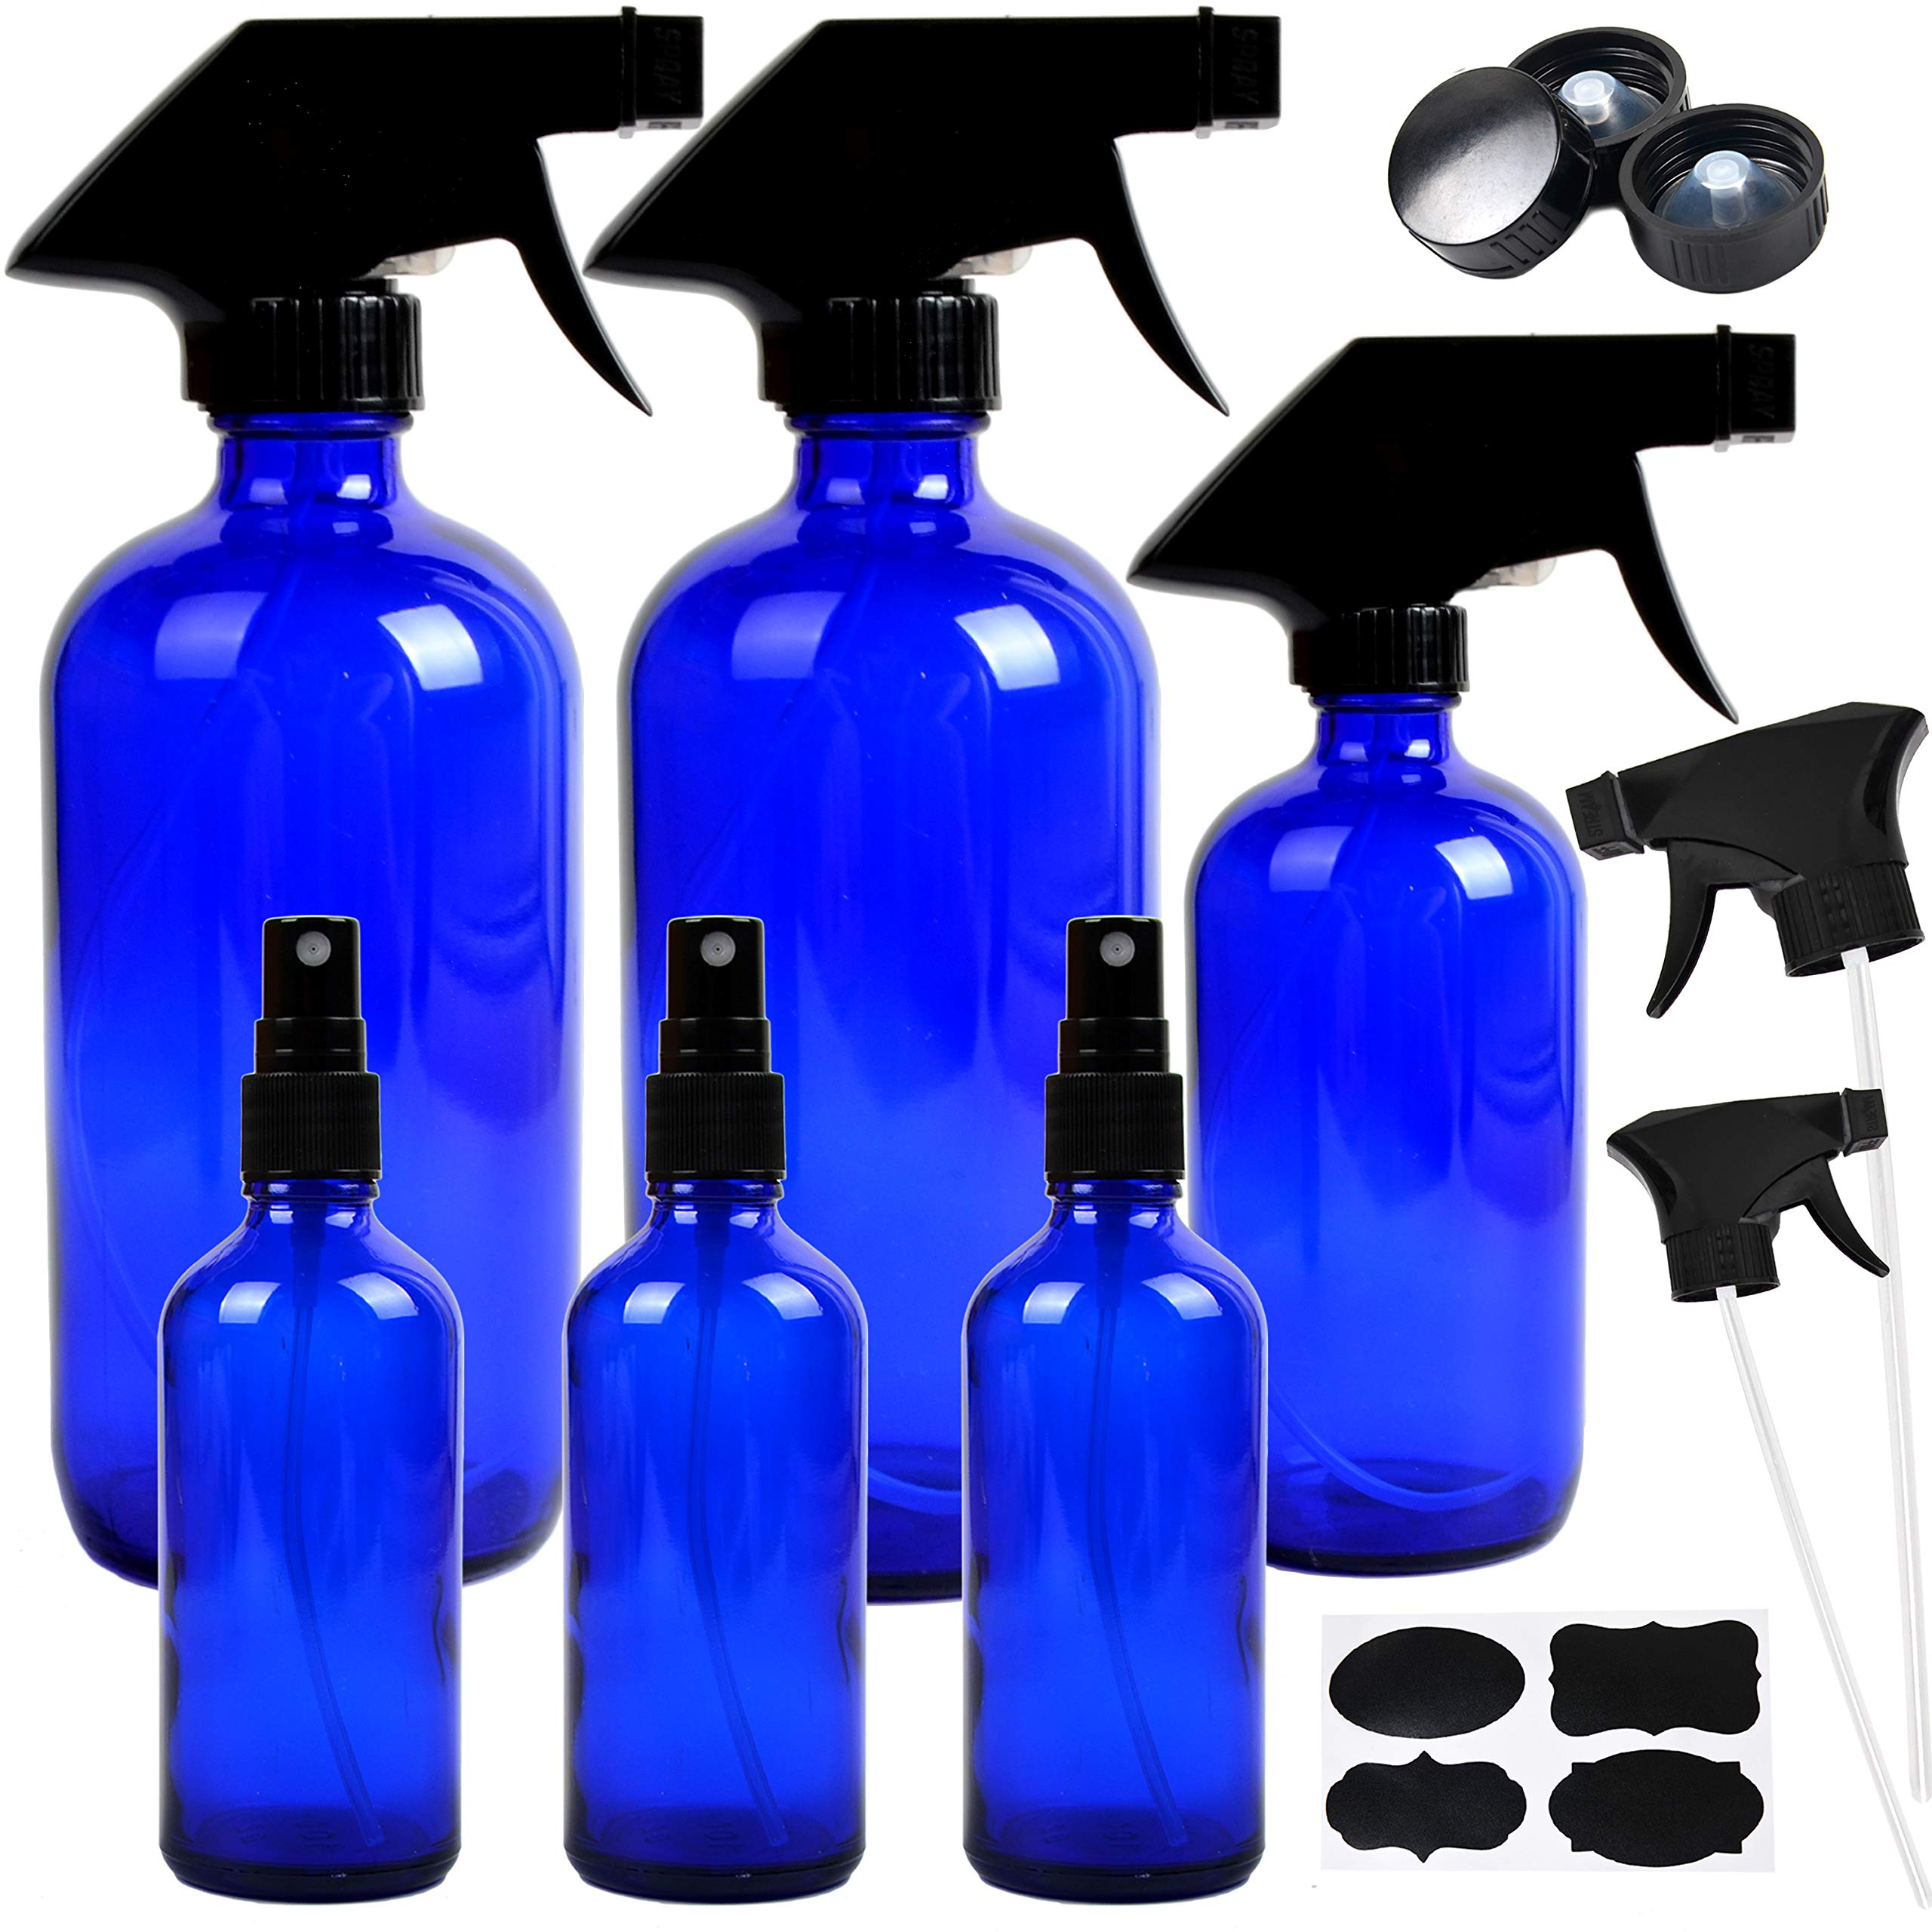 16 oz 500ml Cobalt Blue Glass Boston Bottle with Plastic Pump Featured Image